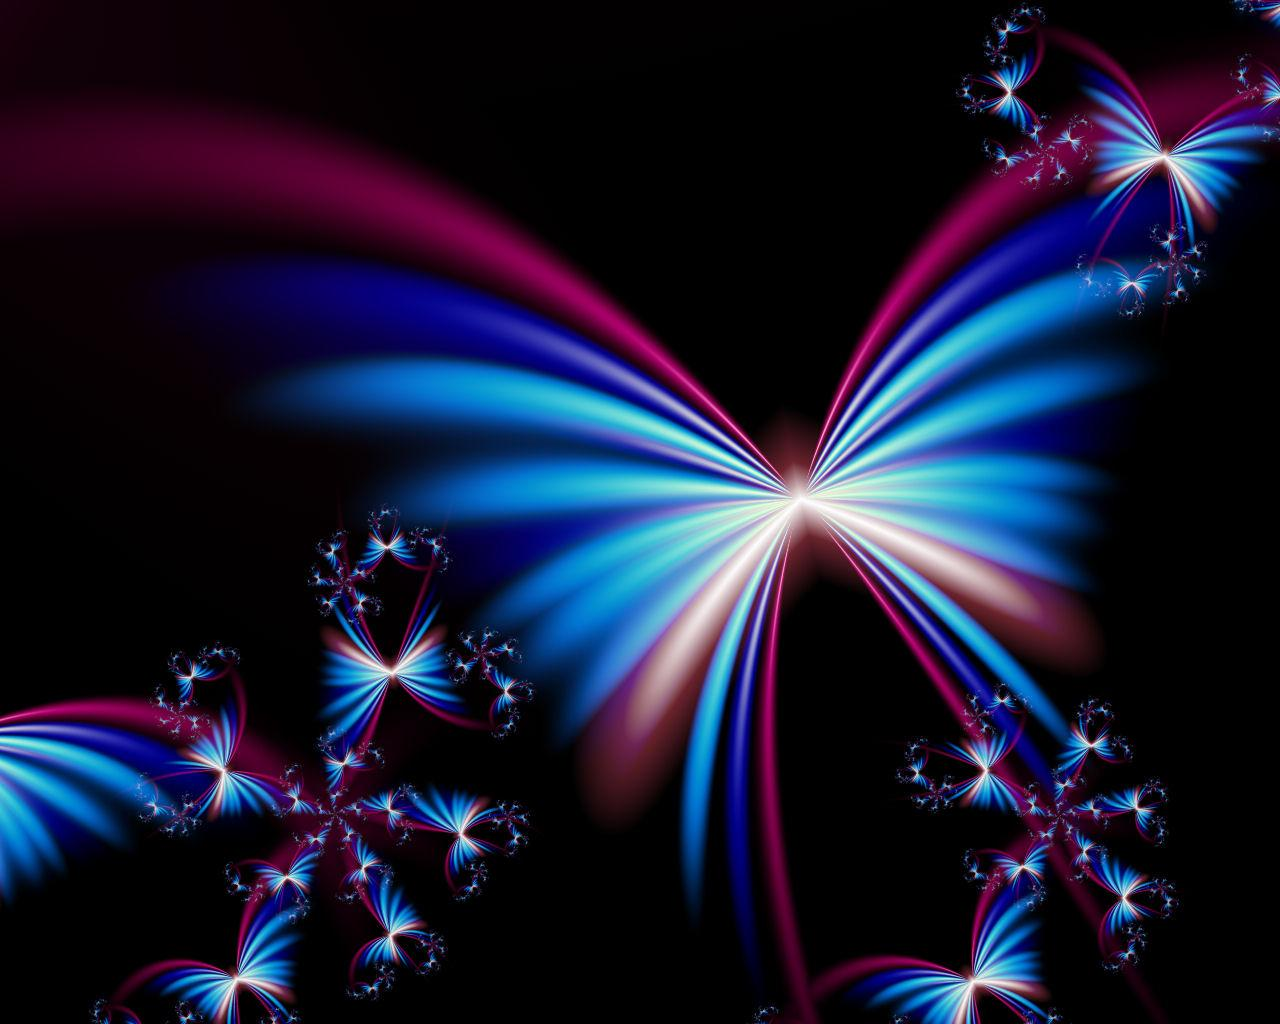 1280x1024 - Pretty Butterfly Backgrounds 28